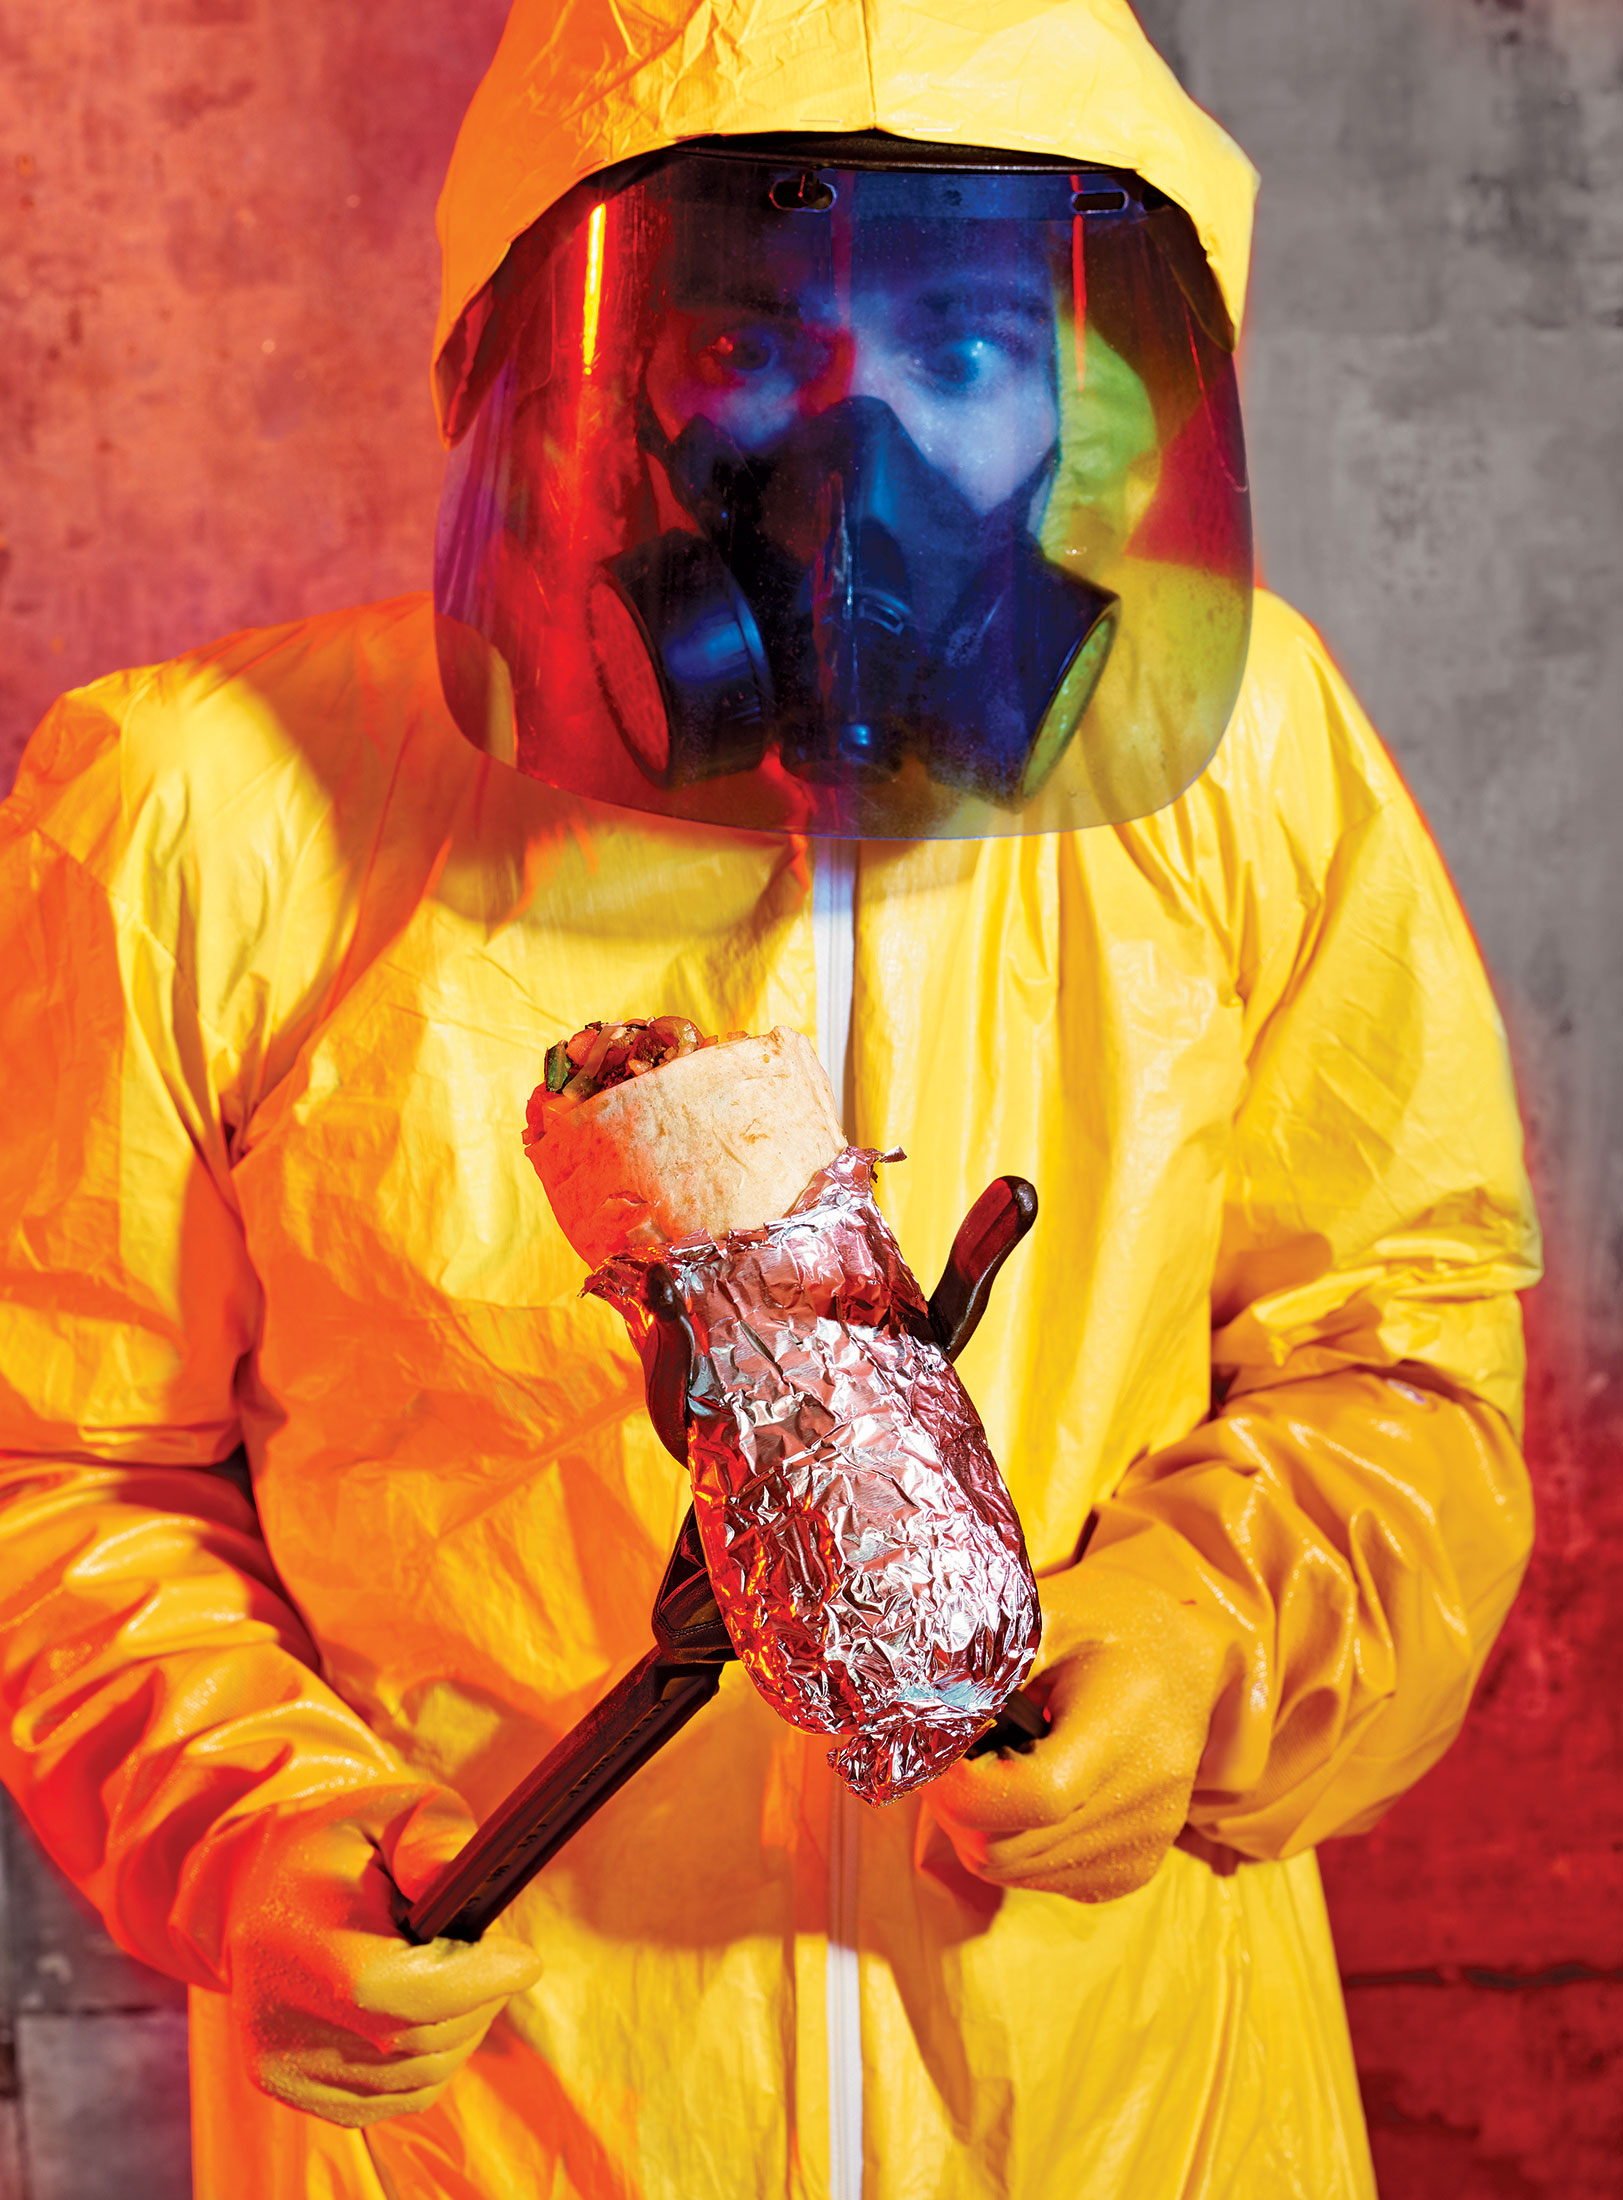 Chipotle Food Safety Crisis